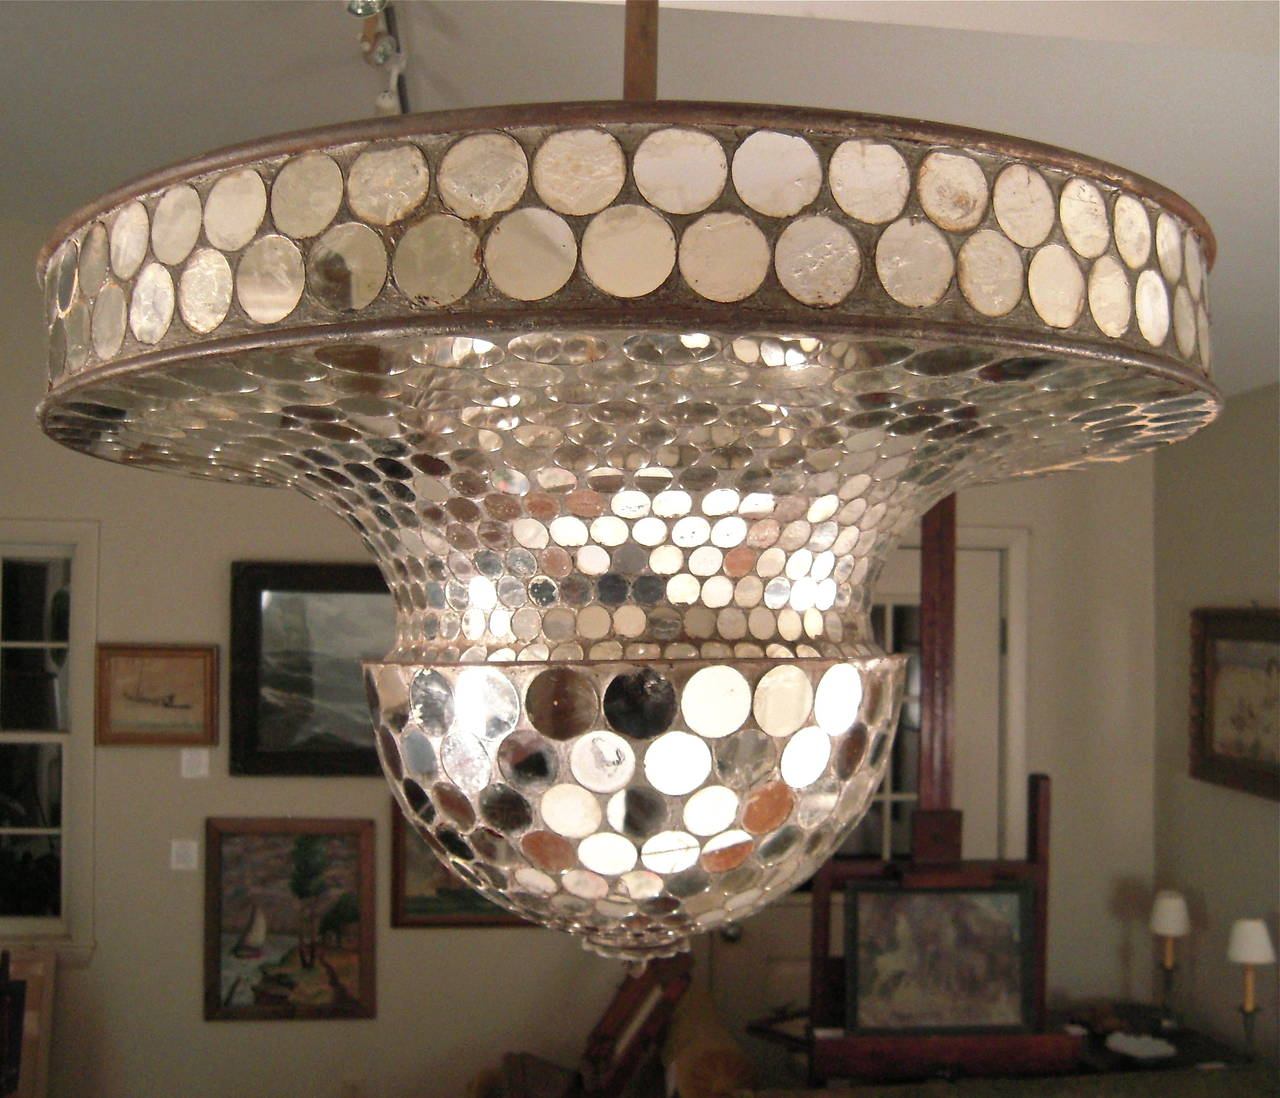 Rare Working Mirrored Stardust Ballroom Light, Early Disco Ball at ...